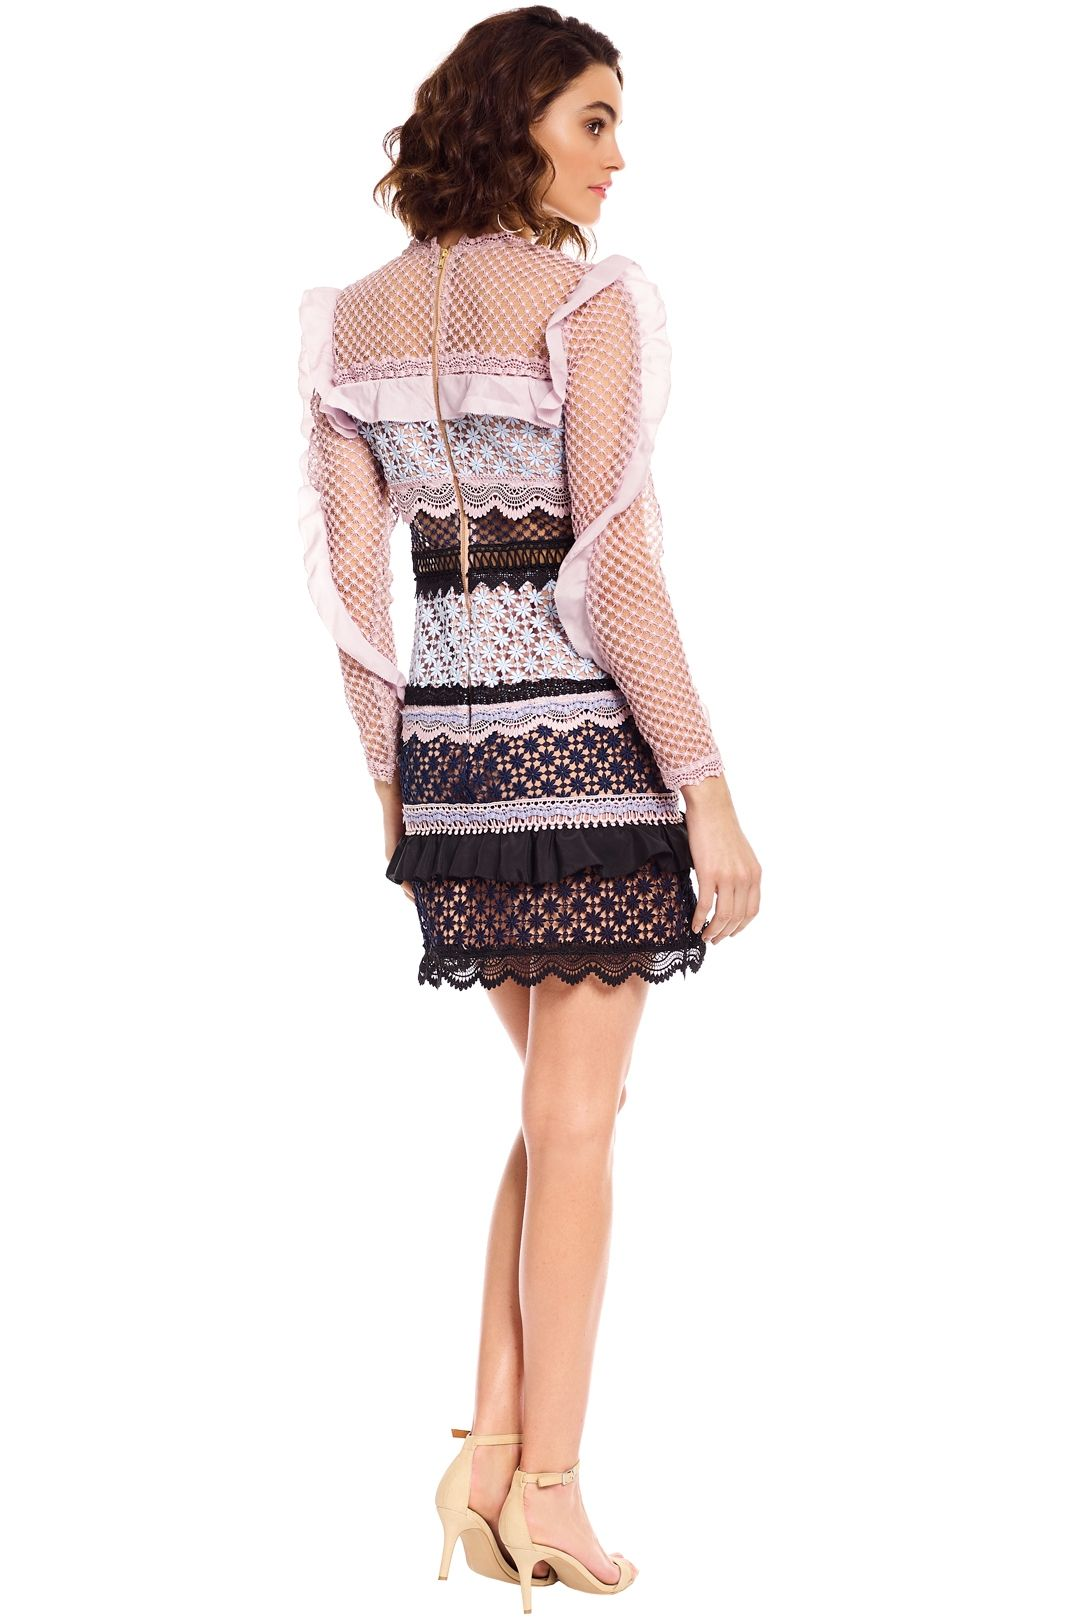 Self Portrait - Bellis Lace Trim Dress with Frilled Sleeves - Pink - Back